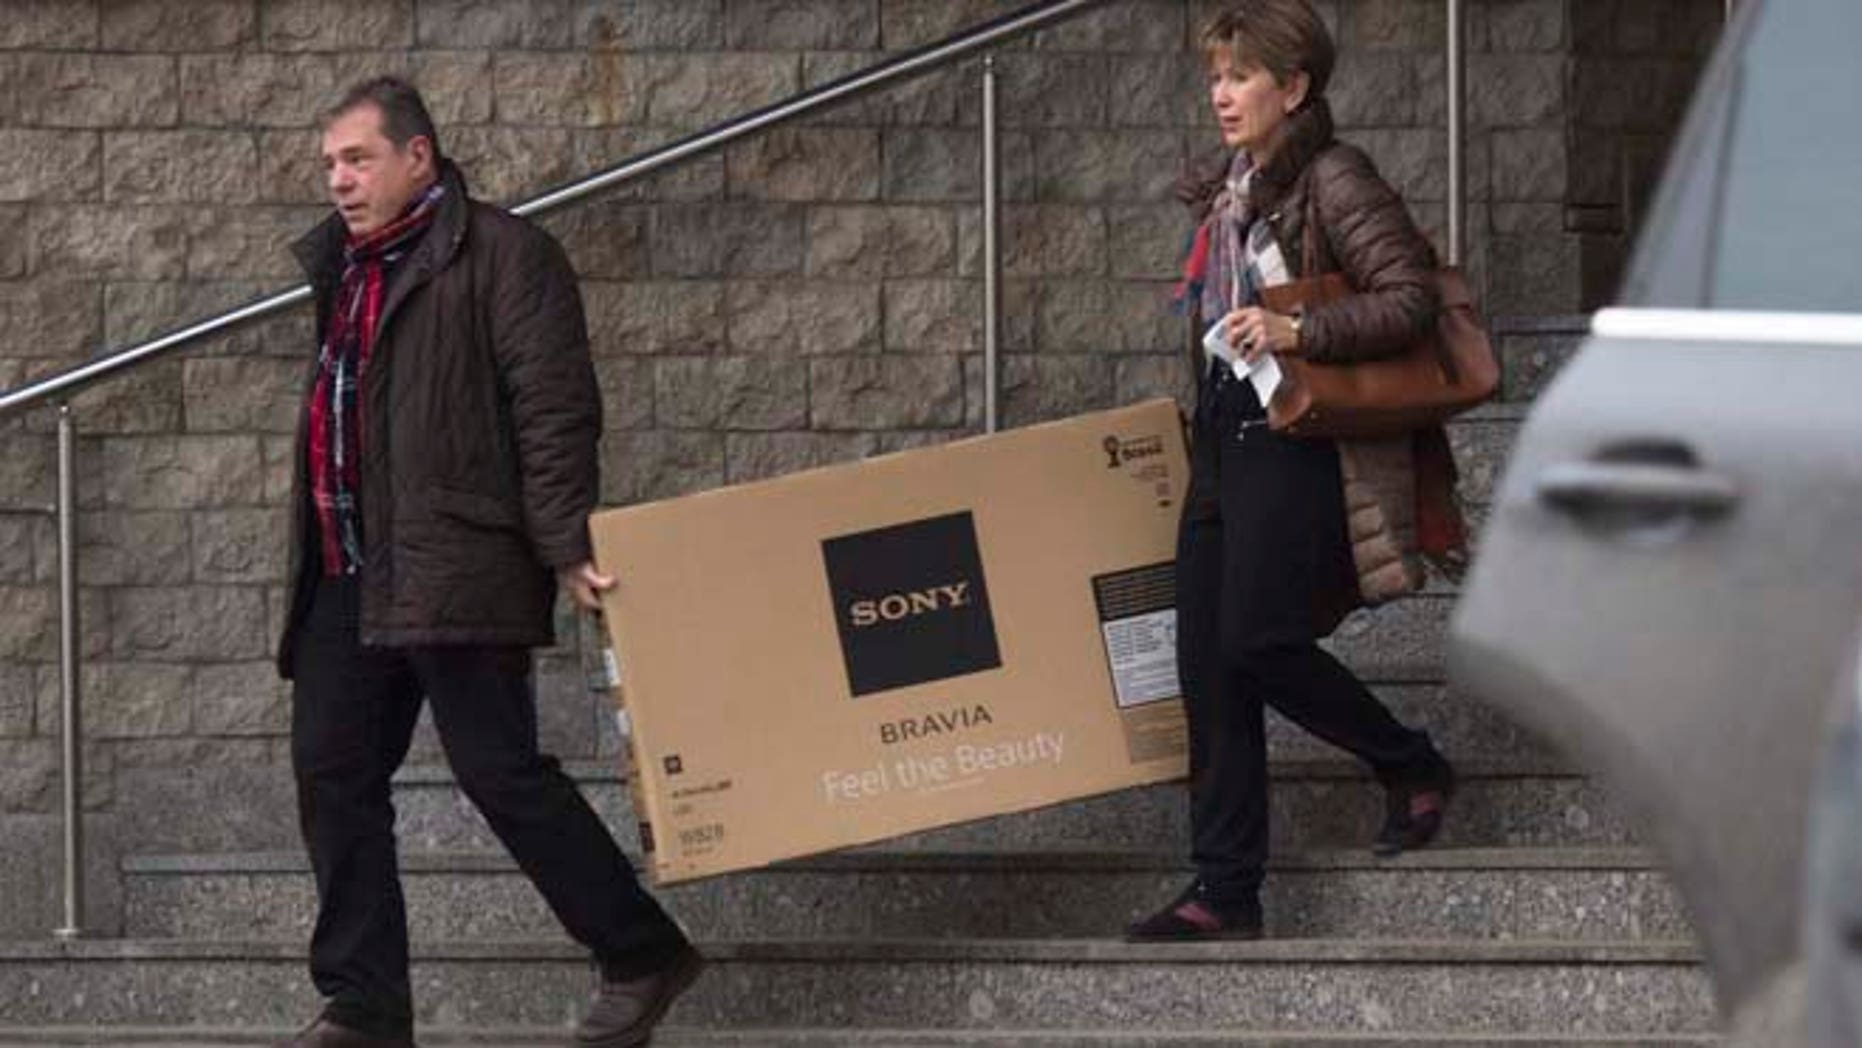 Dec. 17, 2014: A couple carry a television set they purchased from a shop in St. Petersburg, Russia. The collapse of the national currency triggered a spending spree by Russians desperate to buy cars and home appliances before prices shoot higher. Several car dealership were reported to have suspended sales, unsure how far down the ruble will go, while Apple halted all online sales in Russia.